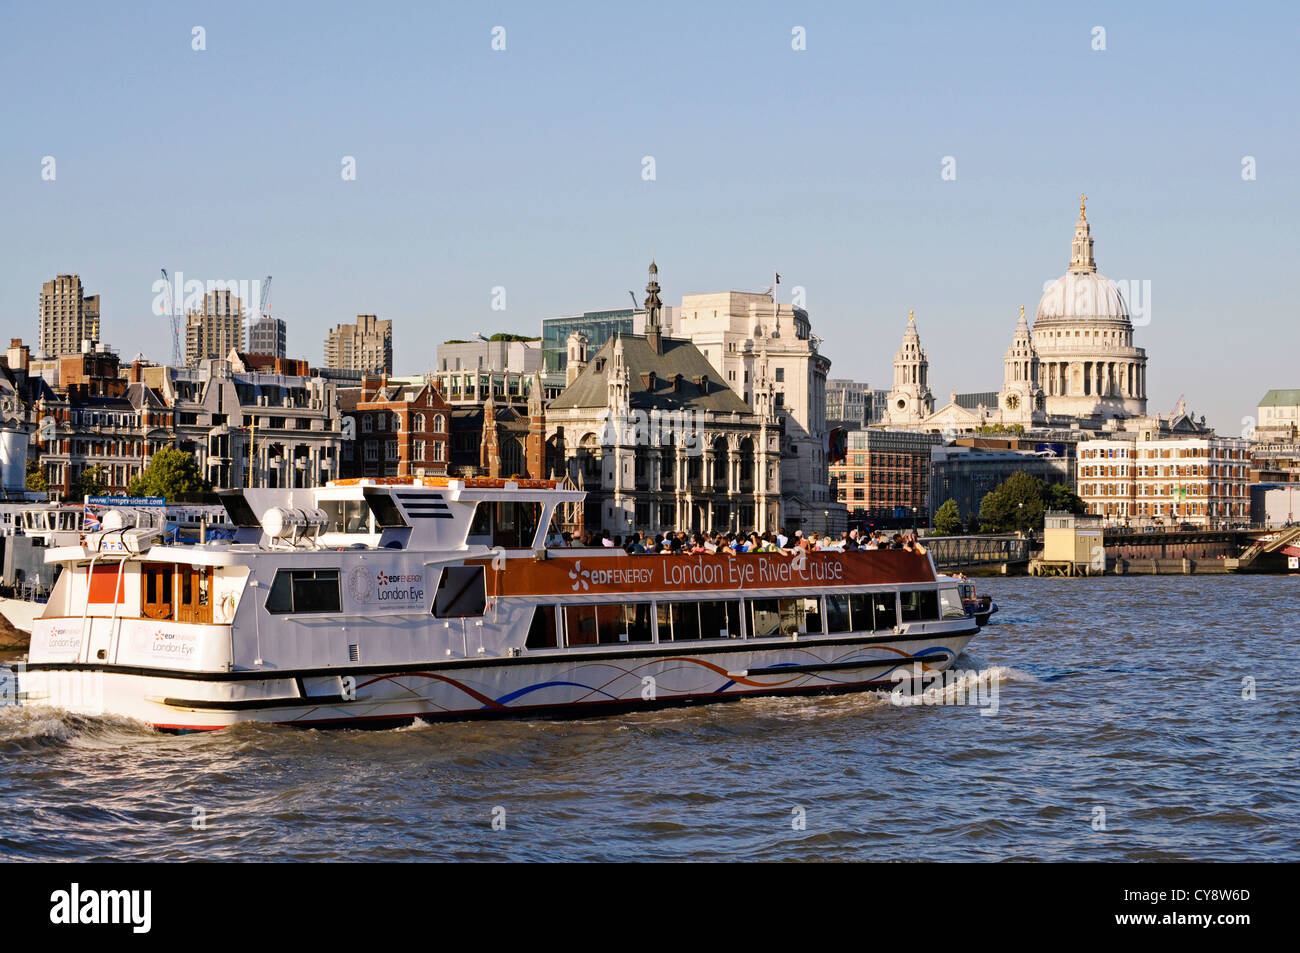 London River Thames cruise boat with St Pauls in the background at dusk. - Stock Image